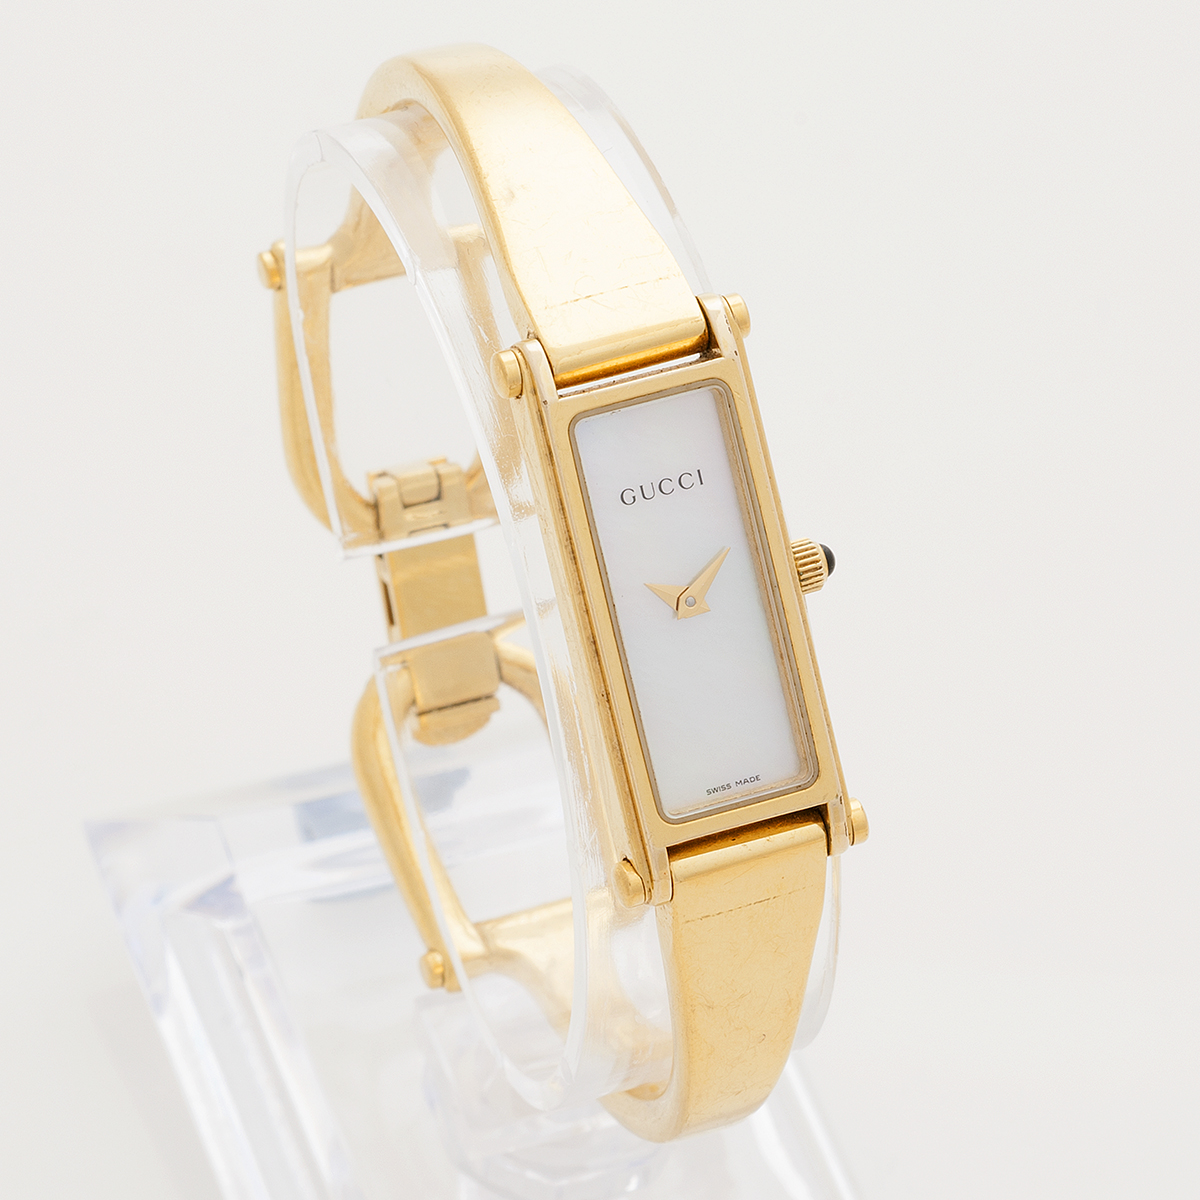 f78fcc02de7bf6 Gucci W1074 1 · Gucci W1074 4 · Gucci W1074 3 · Gucci W1074 2. Gucci 1500L  Mother of Pearl Bangle  high fashion watch brands